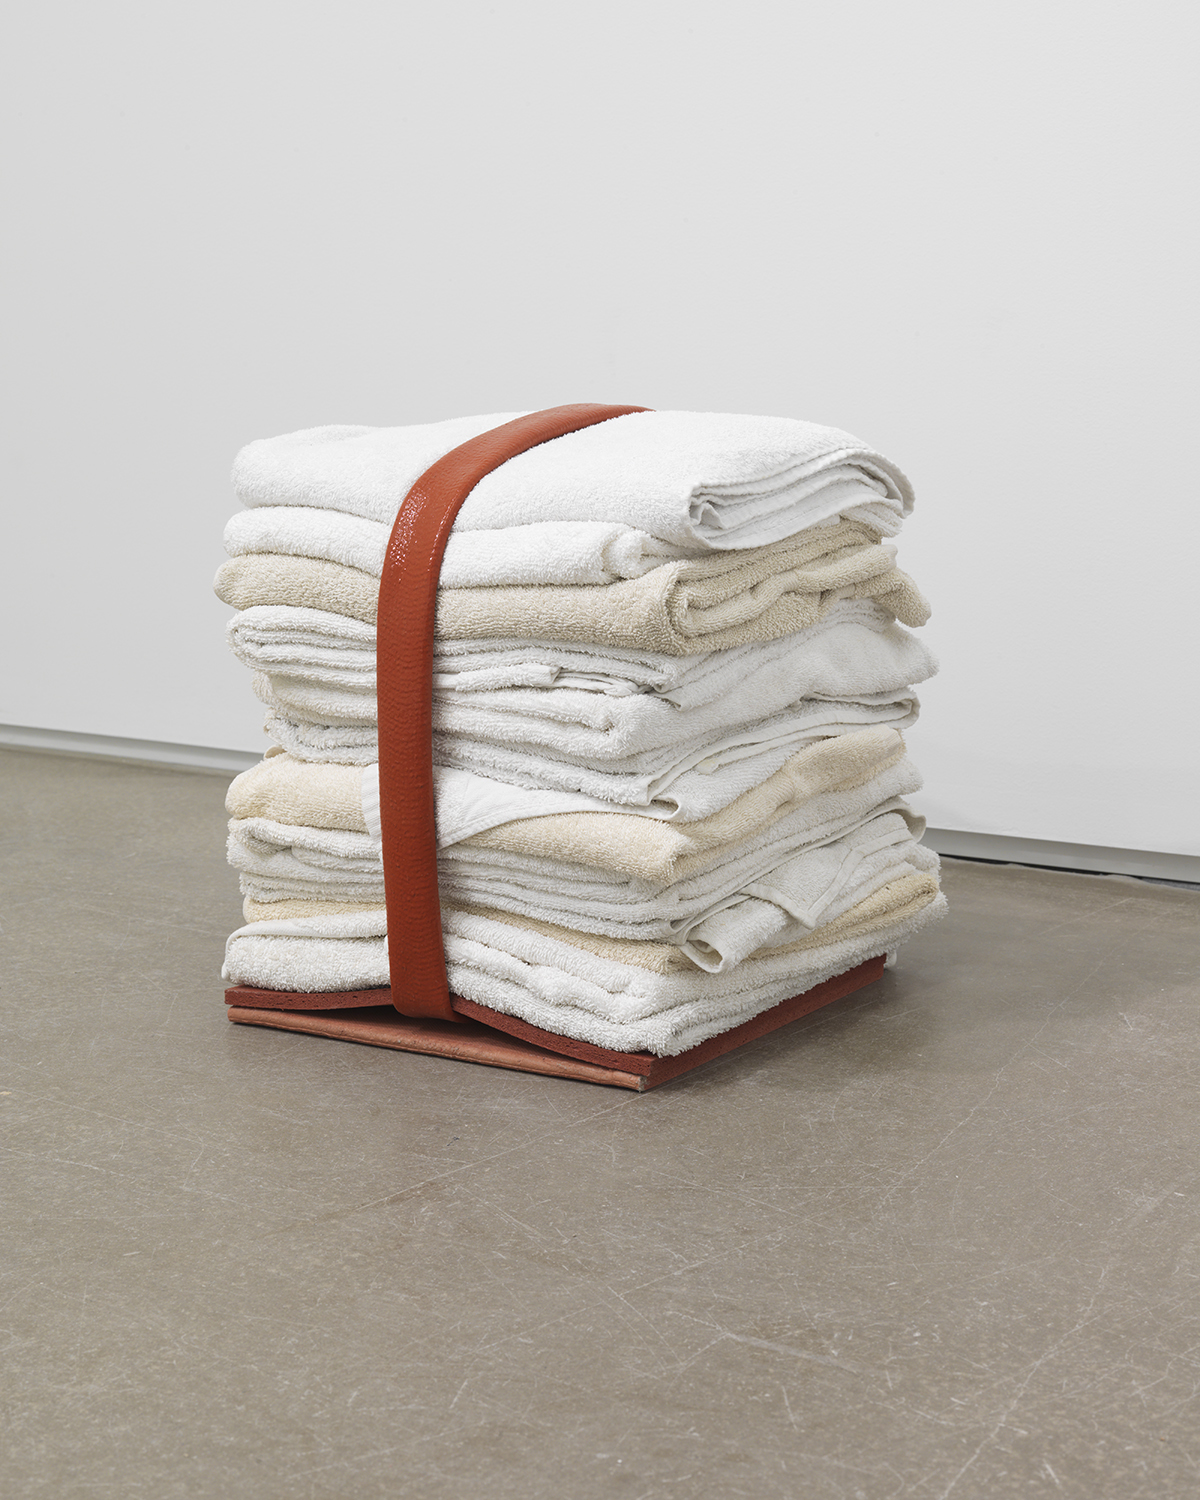 Zachary Susskind  Mother Tongue , 2012 Cotton, rubber and silicone 15 x 15 x 15 inches